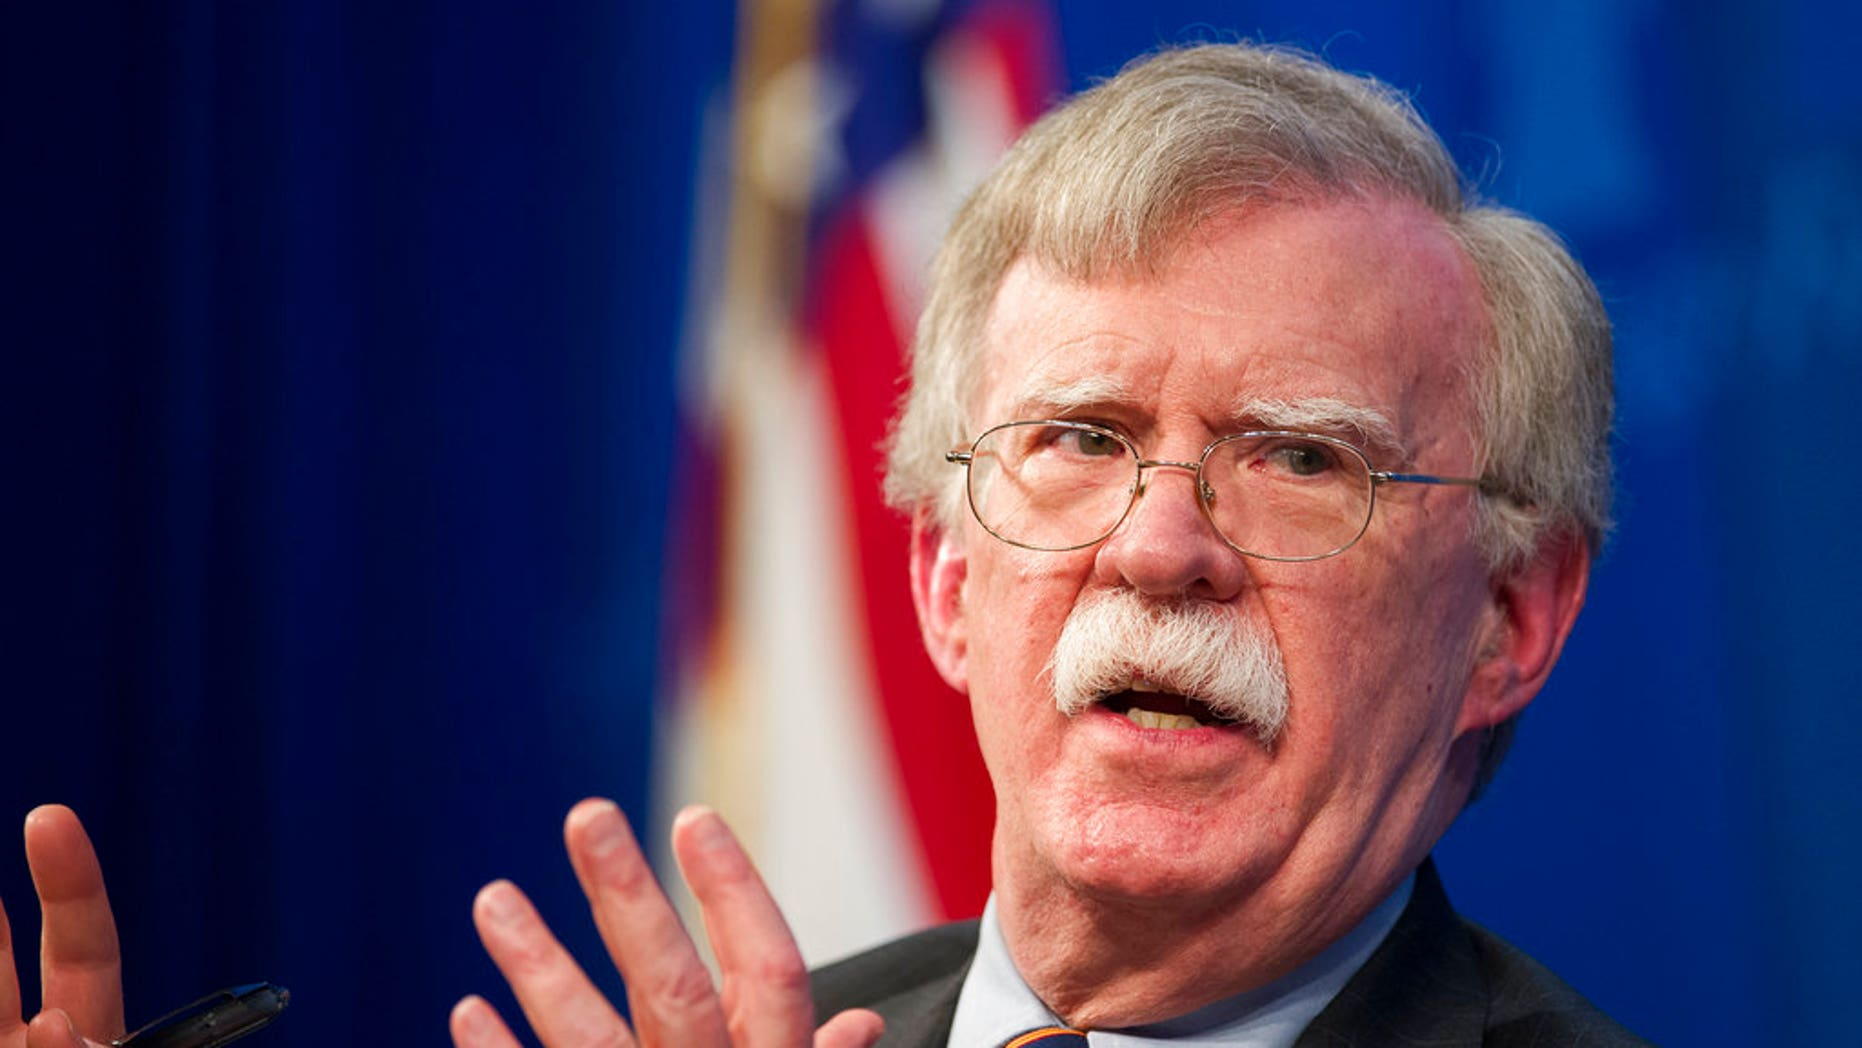 Bolton slams China, Russia over 'predatory practices' in Africa